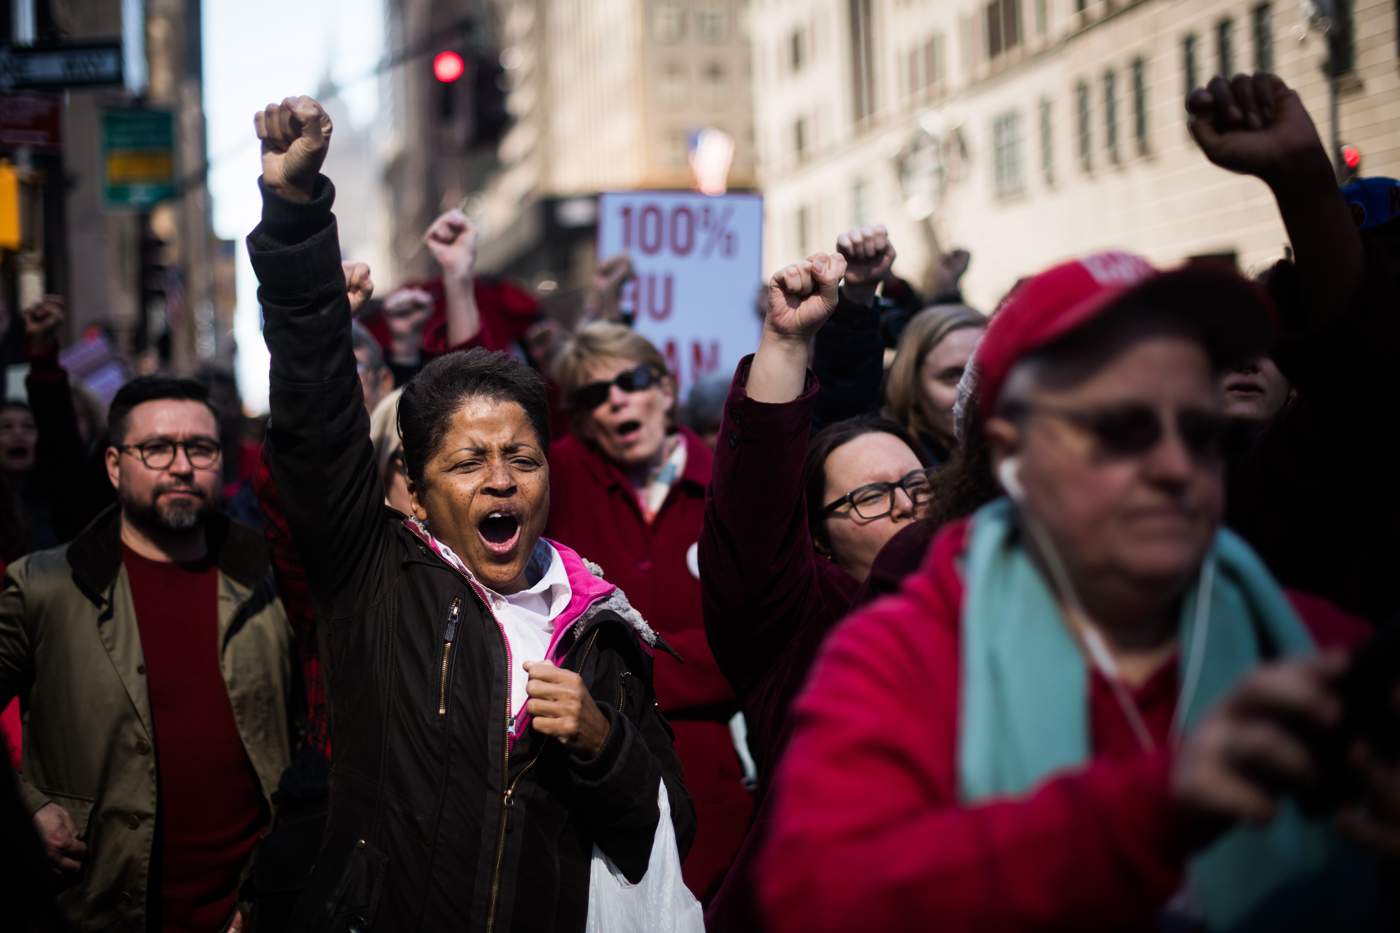 Gloria Brown, 55, cheers during an International Women's Day rally and march in New York, NY on March 8, 2017. Brown missed a little bit of work today to come out to the protests and said: